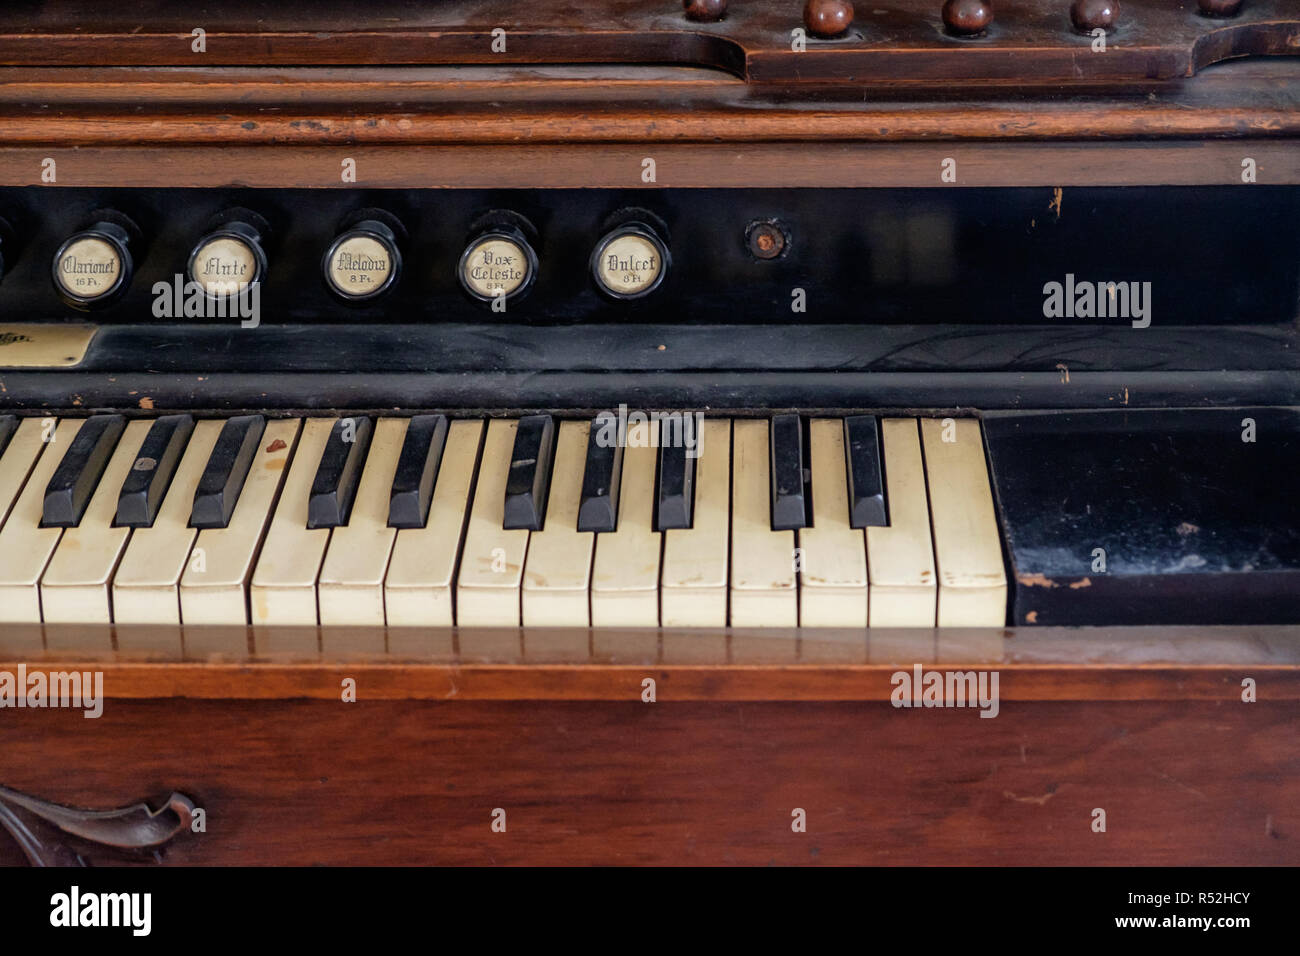 Close up of antique pump organ with sound buttons and piano keyboard. Interior of Texan home, Chestnut Square Historic Village, McKinney, Texas. - Stock Image